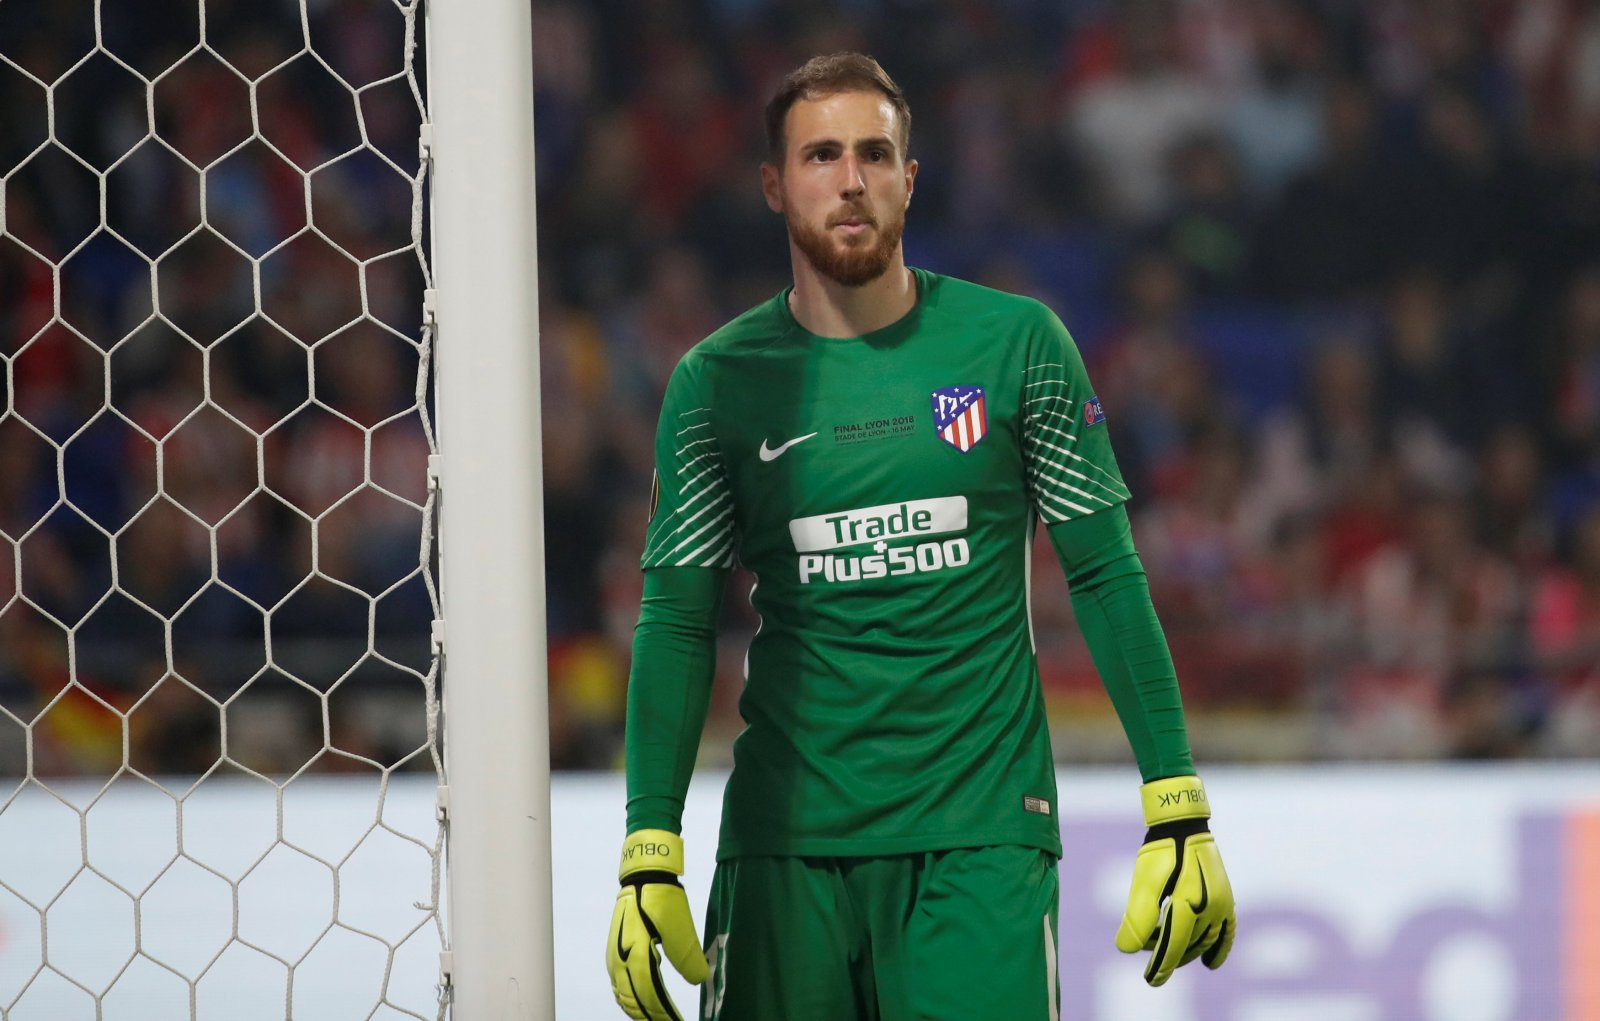 Jan Oblak might actually be an upgrade on David De Gea